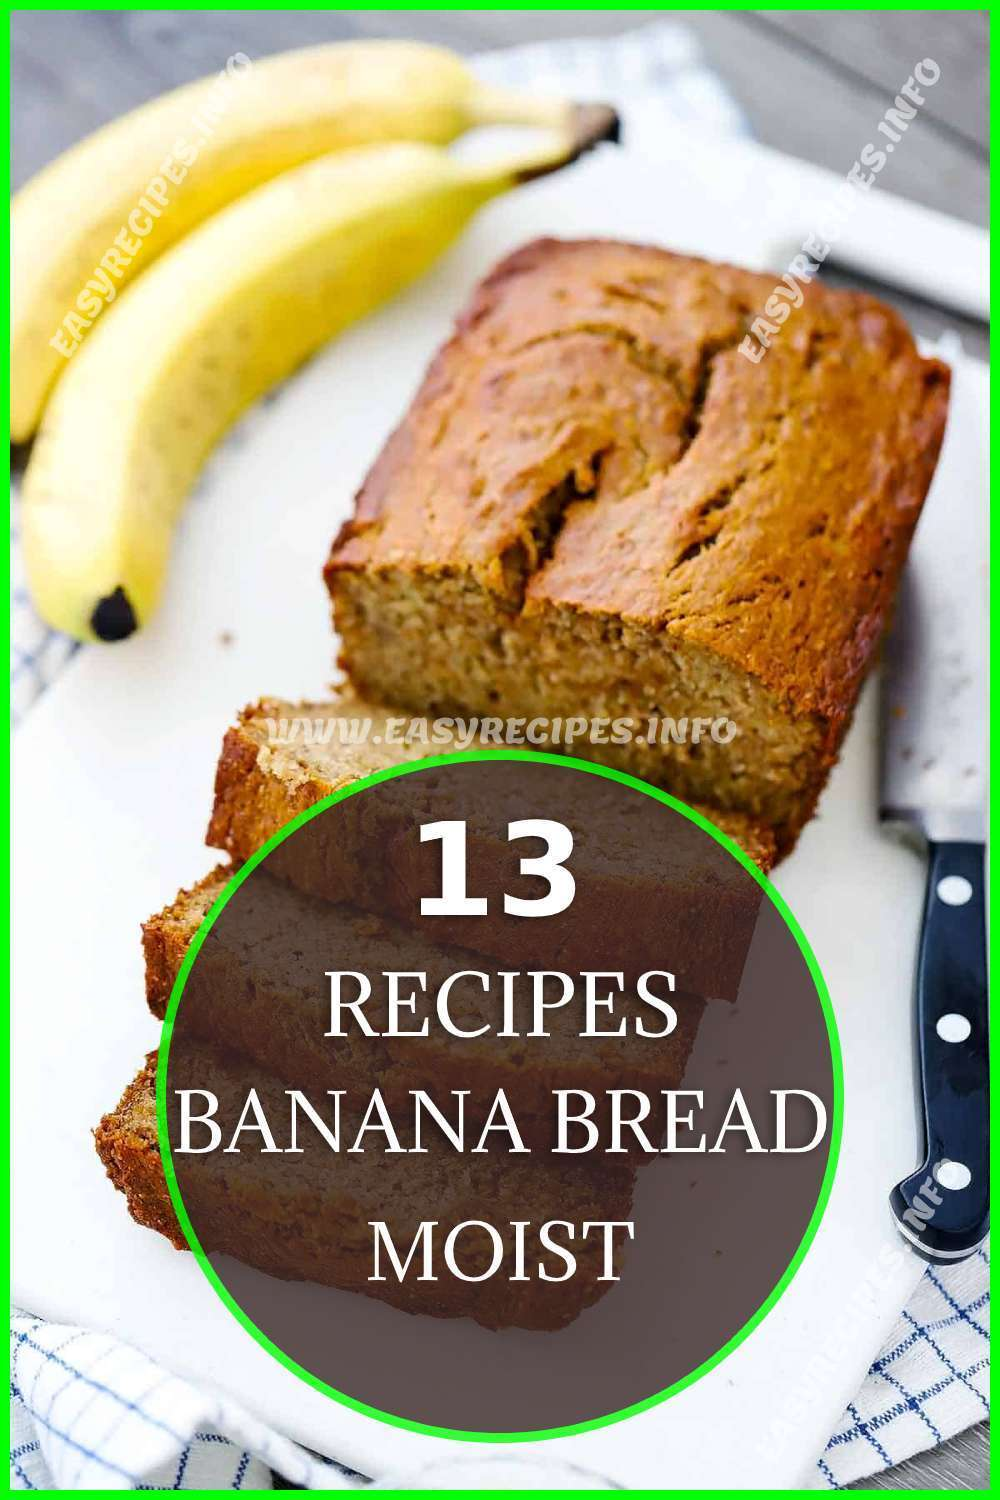 recipes banana bread moist, recipes banana nut bread moist, easy recipes for banana bread moist, recipes for banana nut bread moist, banana bread recipe moist healthy, banana bread recipe moist oil, banana bread recipe moist yogurt, recipe for banana bread moist, recipe banana bread moist, recipe for moist banana bread, easy recipes for banana bread moist, recipe banana nut bread moist, recipe for super moist banana bread, banana bread recipe super moist, moist banana bread recipe, banana bread moist, banana bread moist recipe, recipe for banana bread moist, banana bread super moist, how to make banana bread moist, easy recipes for banana bread moist, how to make bread more moist, how do you make zucchini bread more moist, how do i make my bread more moist, how do you make banana bread more moist